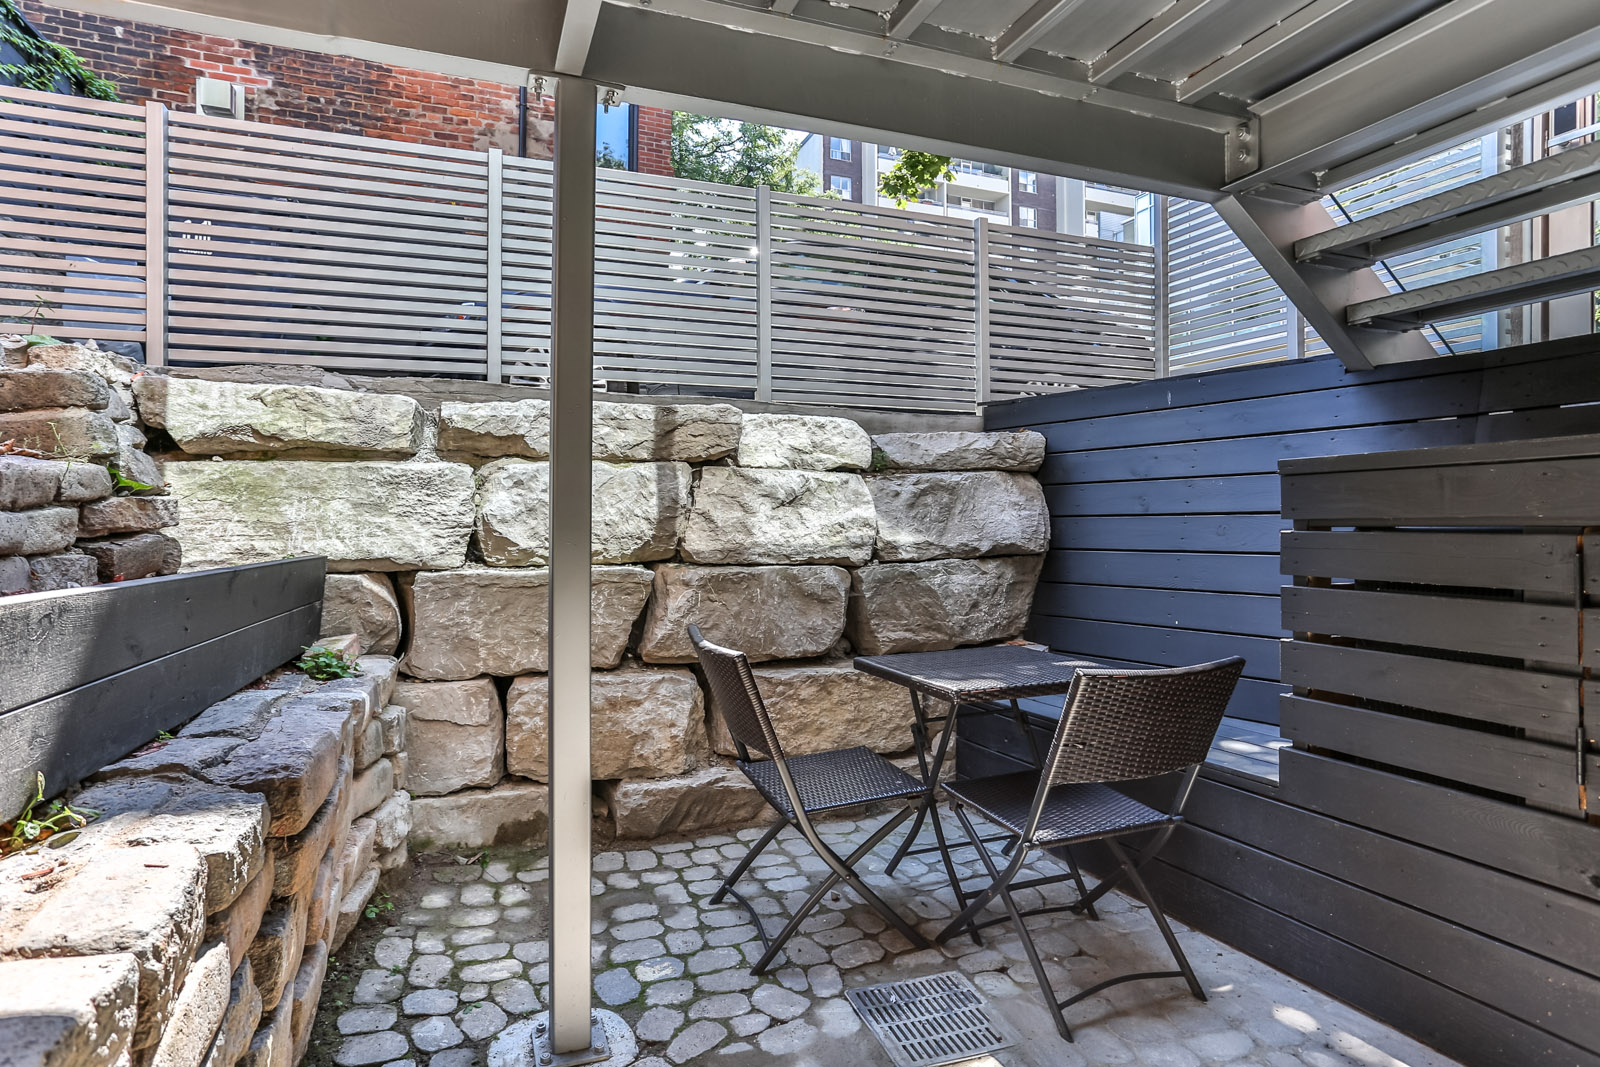 115 Maitland Street patio and brick wall.